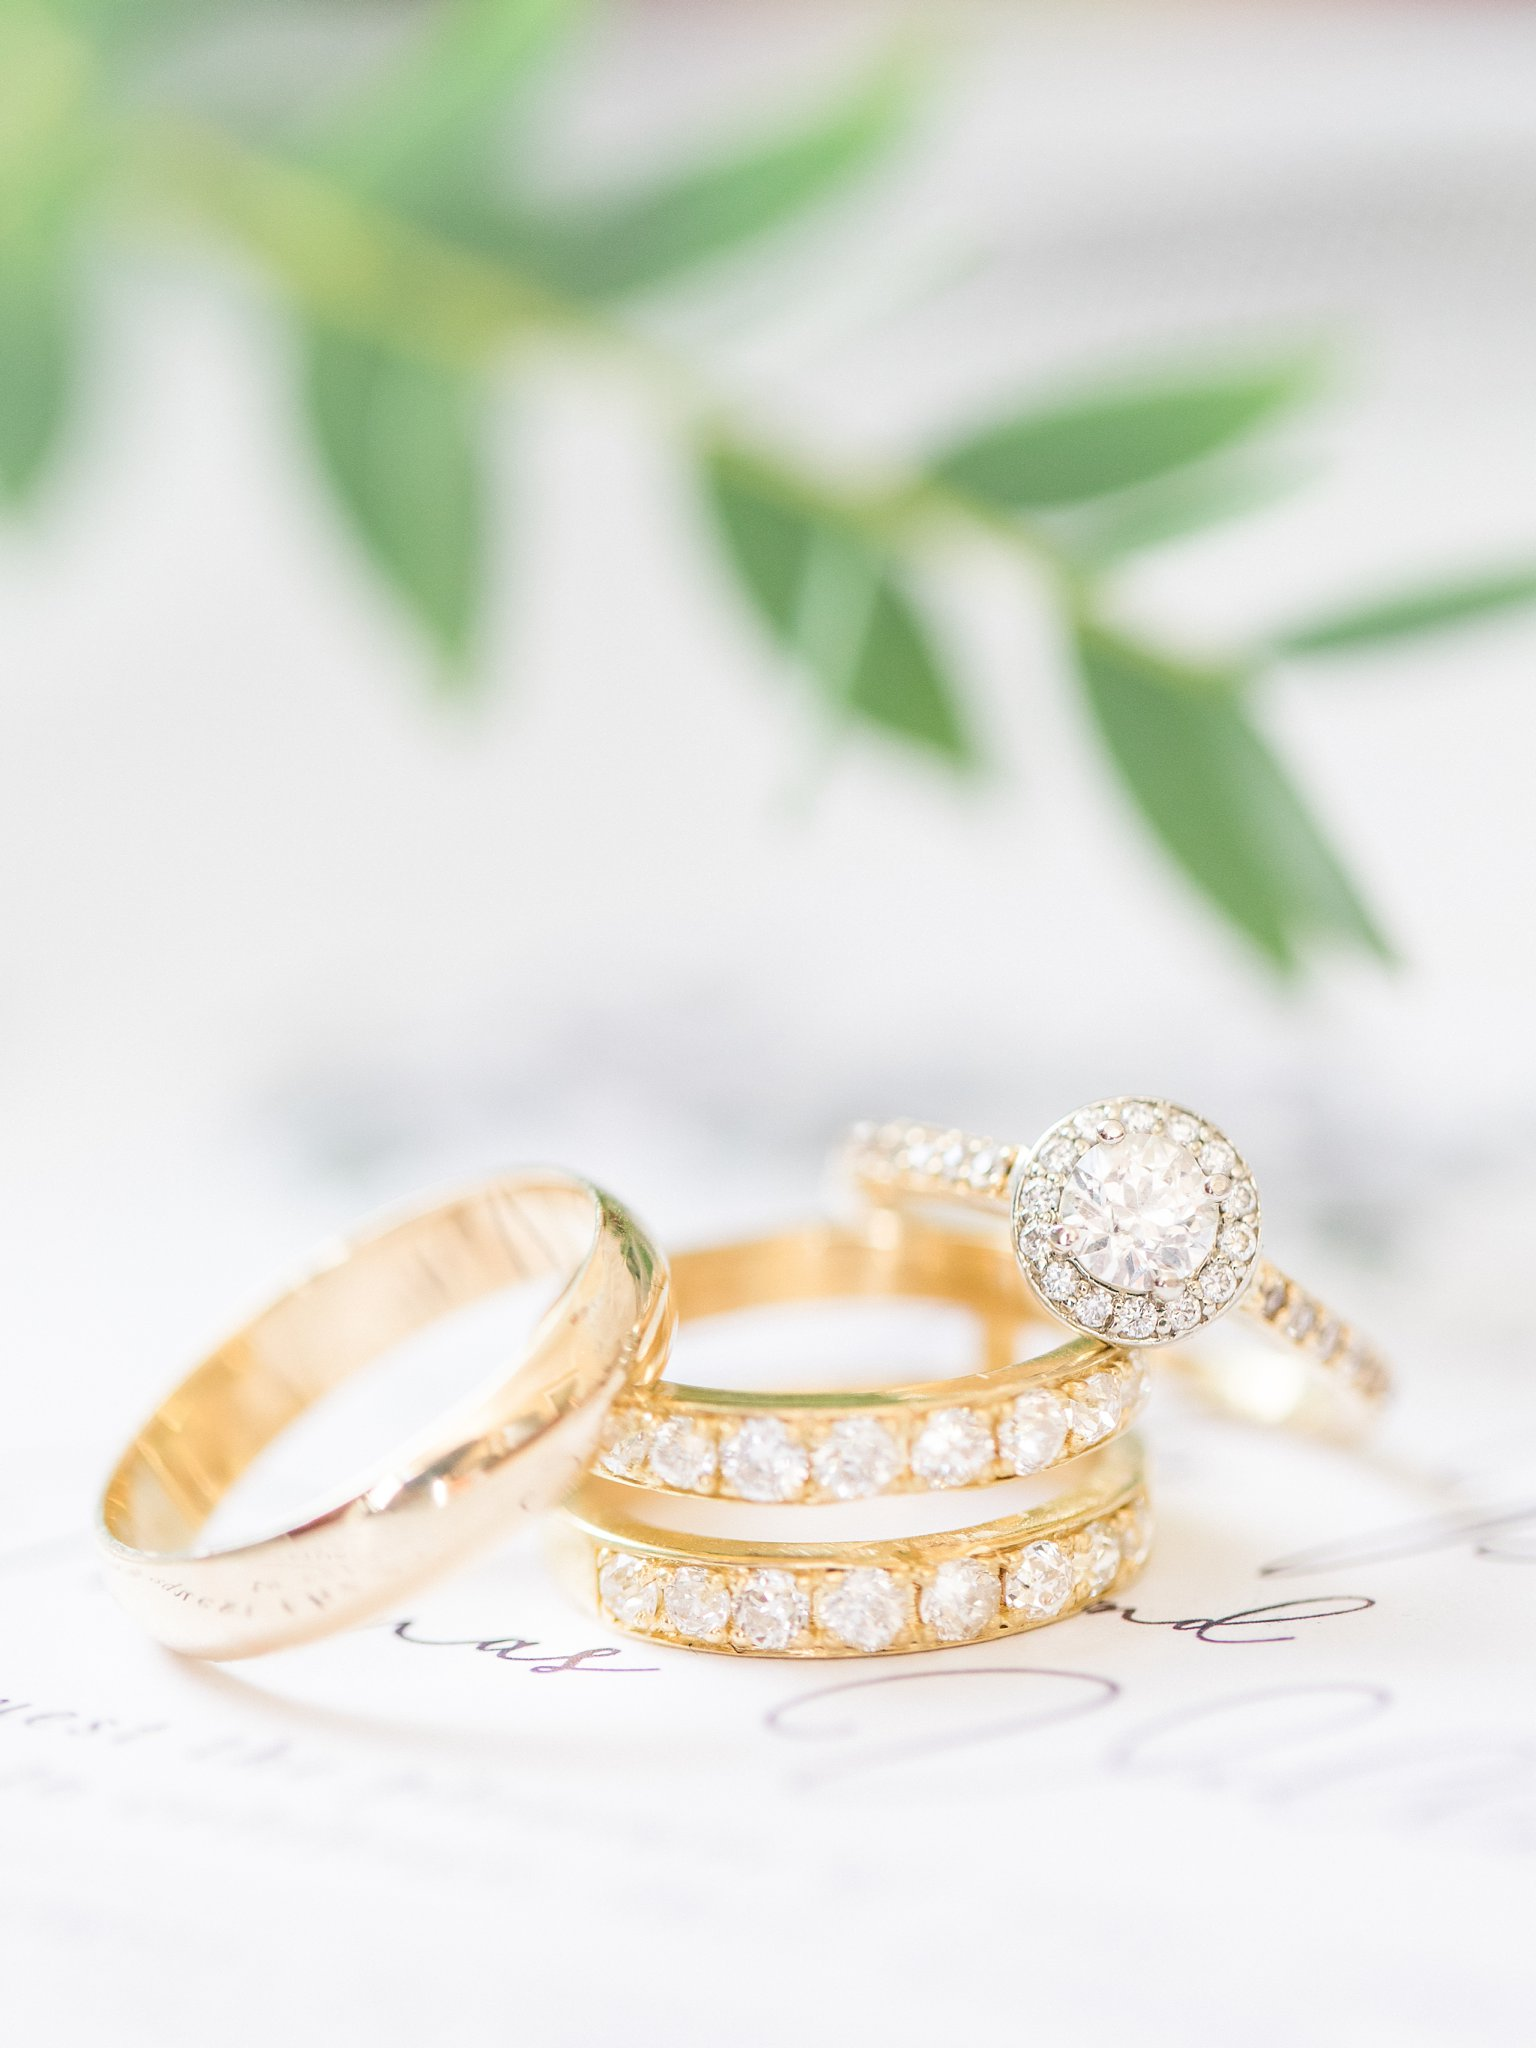 Yellow gold fused wedding bands with round halo diamond engagement ring A Festive Fall Wedding at the Canadian Museum of Nature